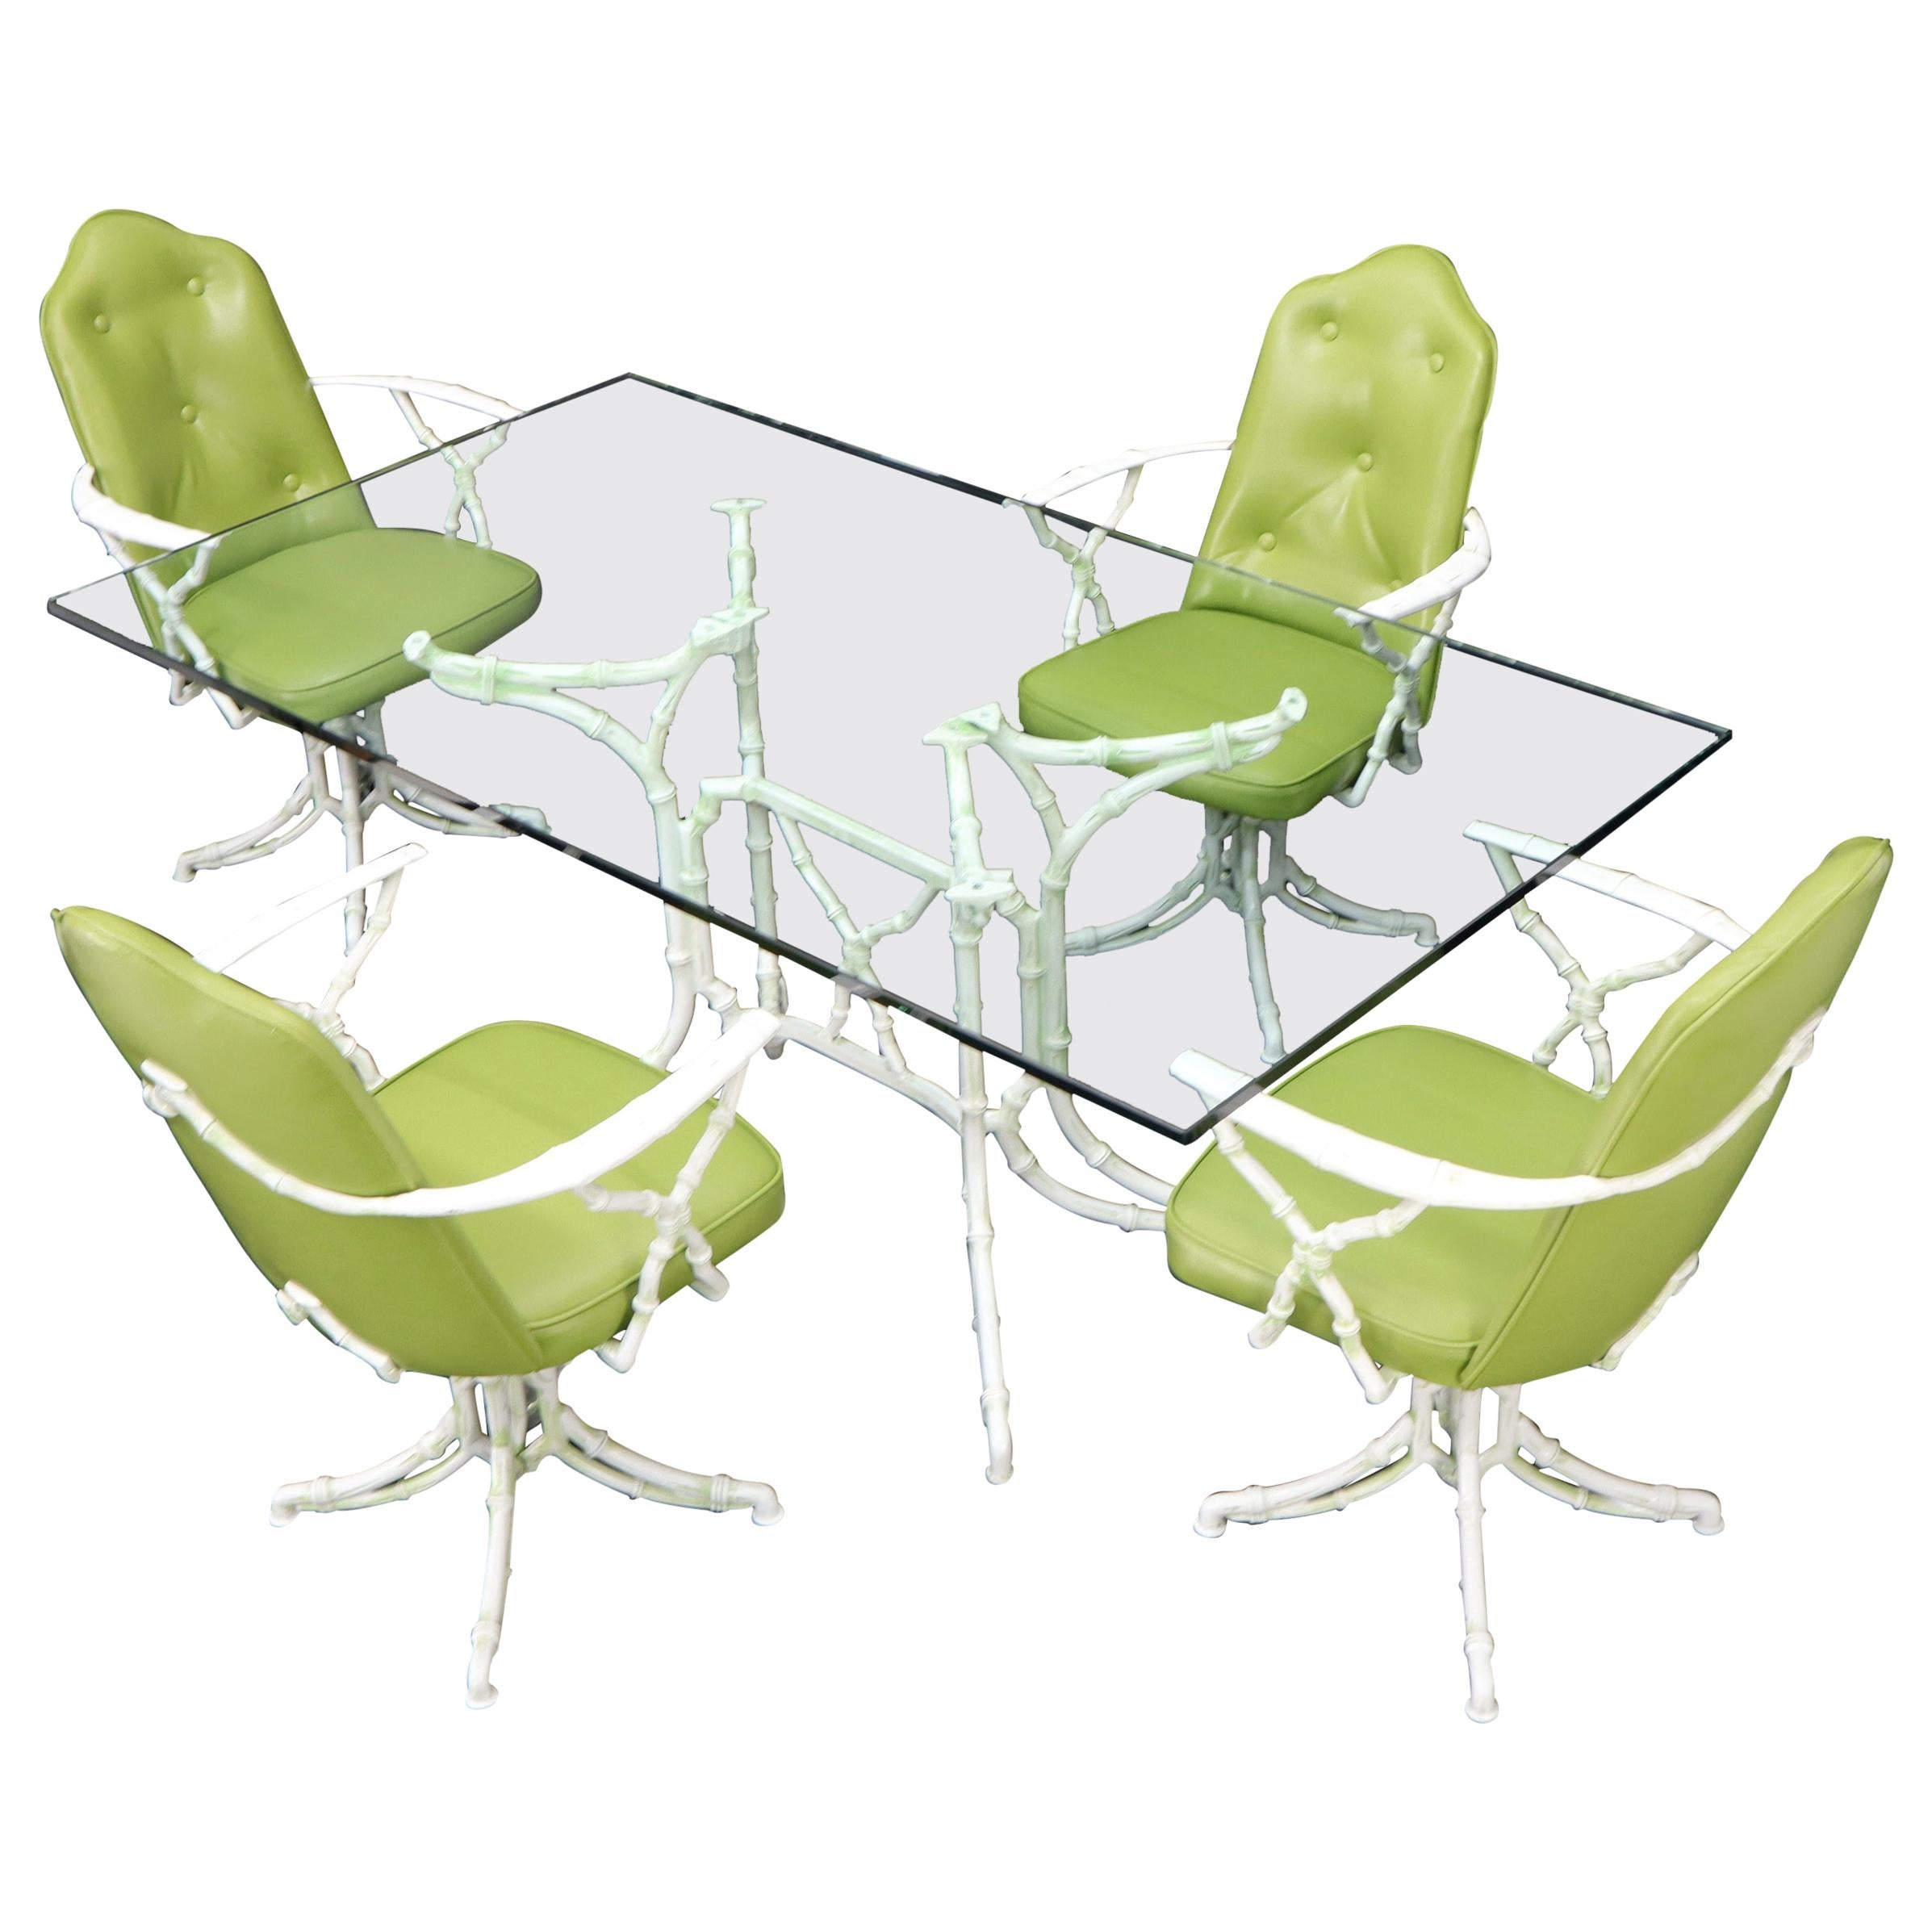 Cast Aluminum Faux Bamboo Dining Table w/ 4 Matching Chairs Outdoors Green Vinyl